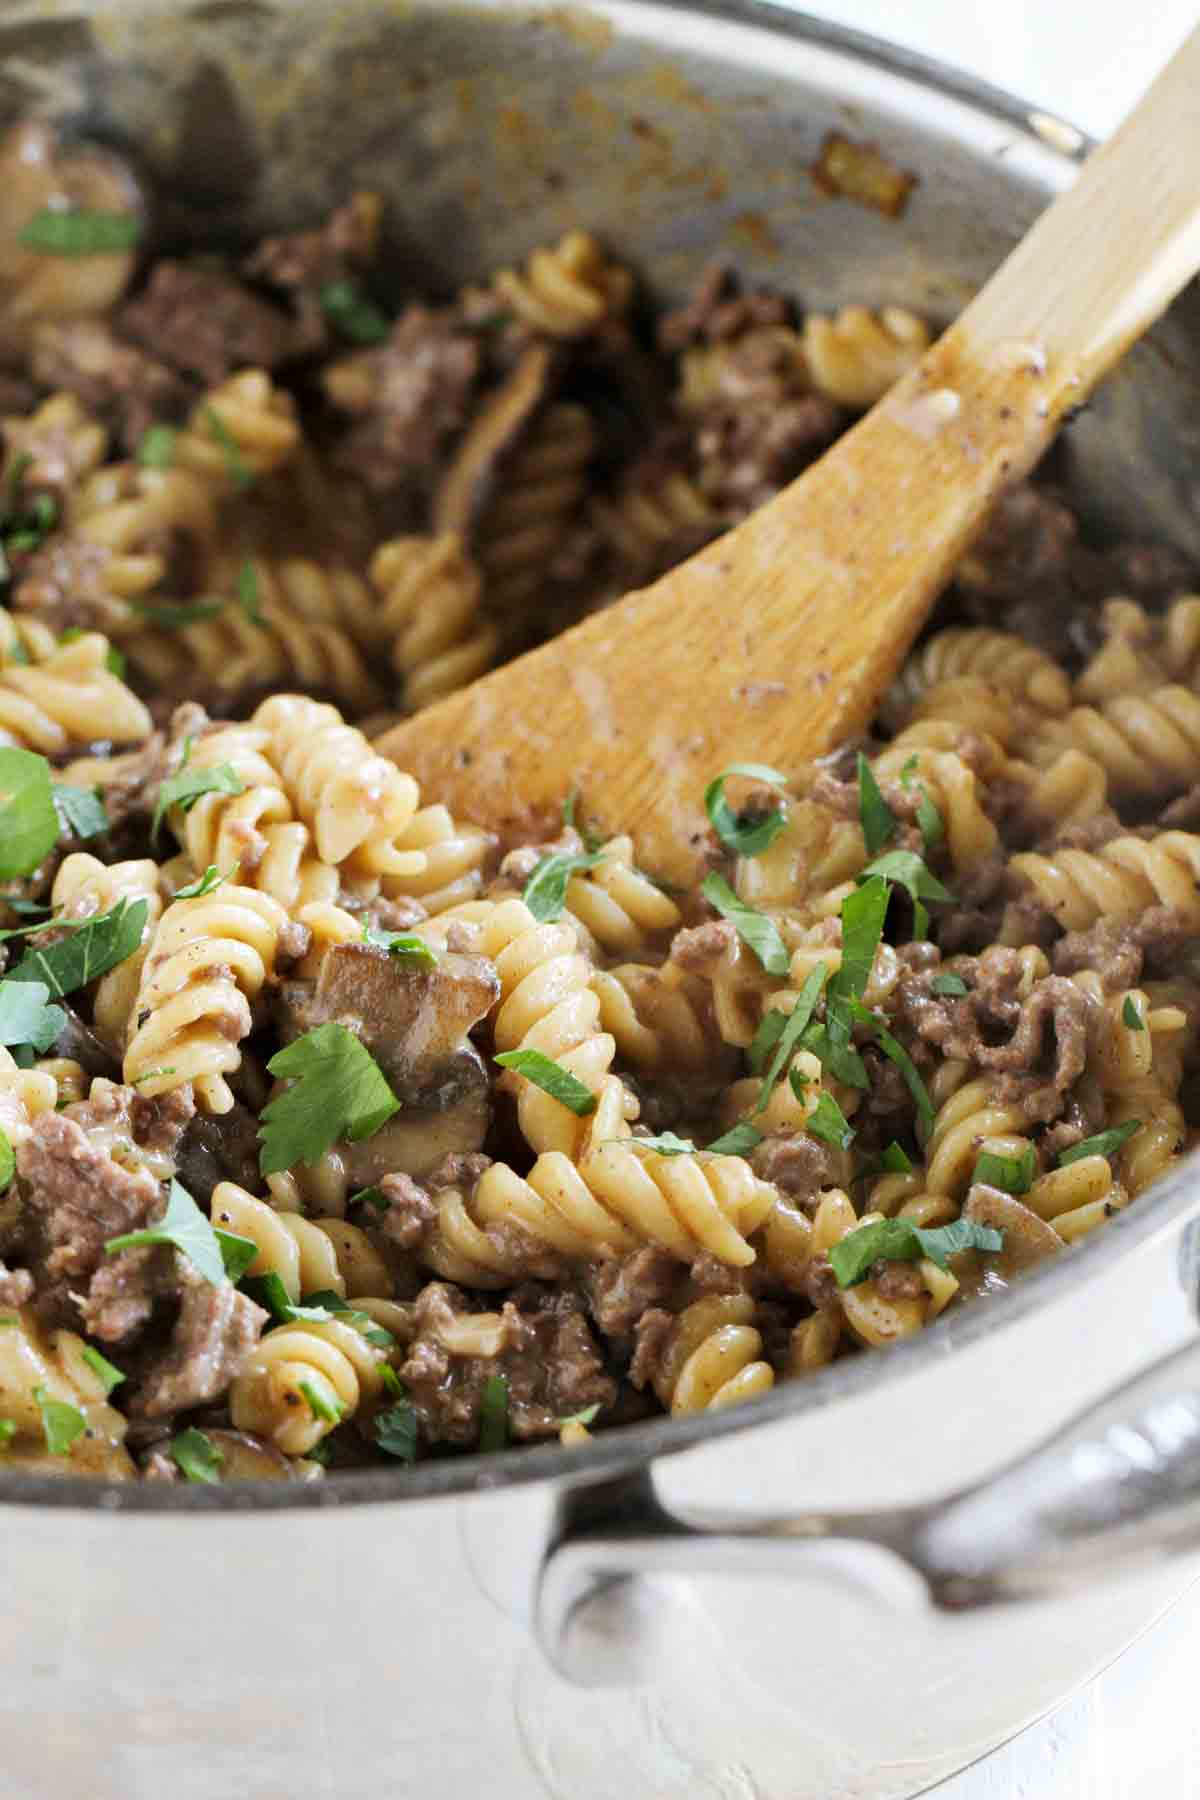 pot with ground beef stroganoff and wooden spoon